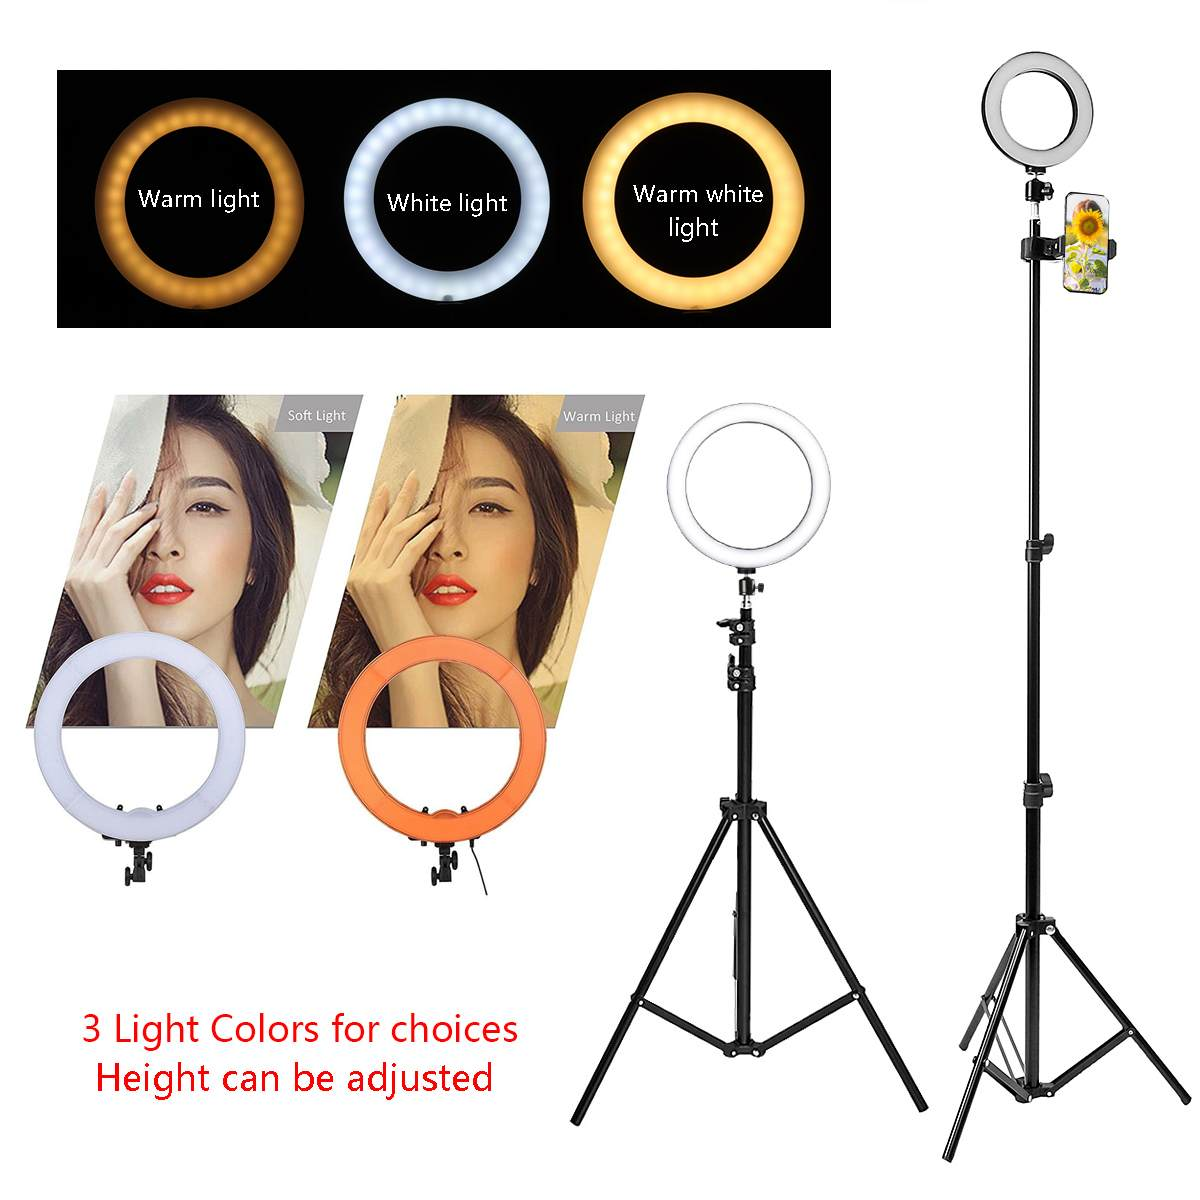 Dedicated Makeup Live Led Ring Lamp Dimmable& Light Stand Kit Phone Photo Selfie Video 12w Warm White Light Compatible Adjustment 20-200mm Be Shrewd In Money Matters Camera & Photo